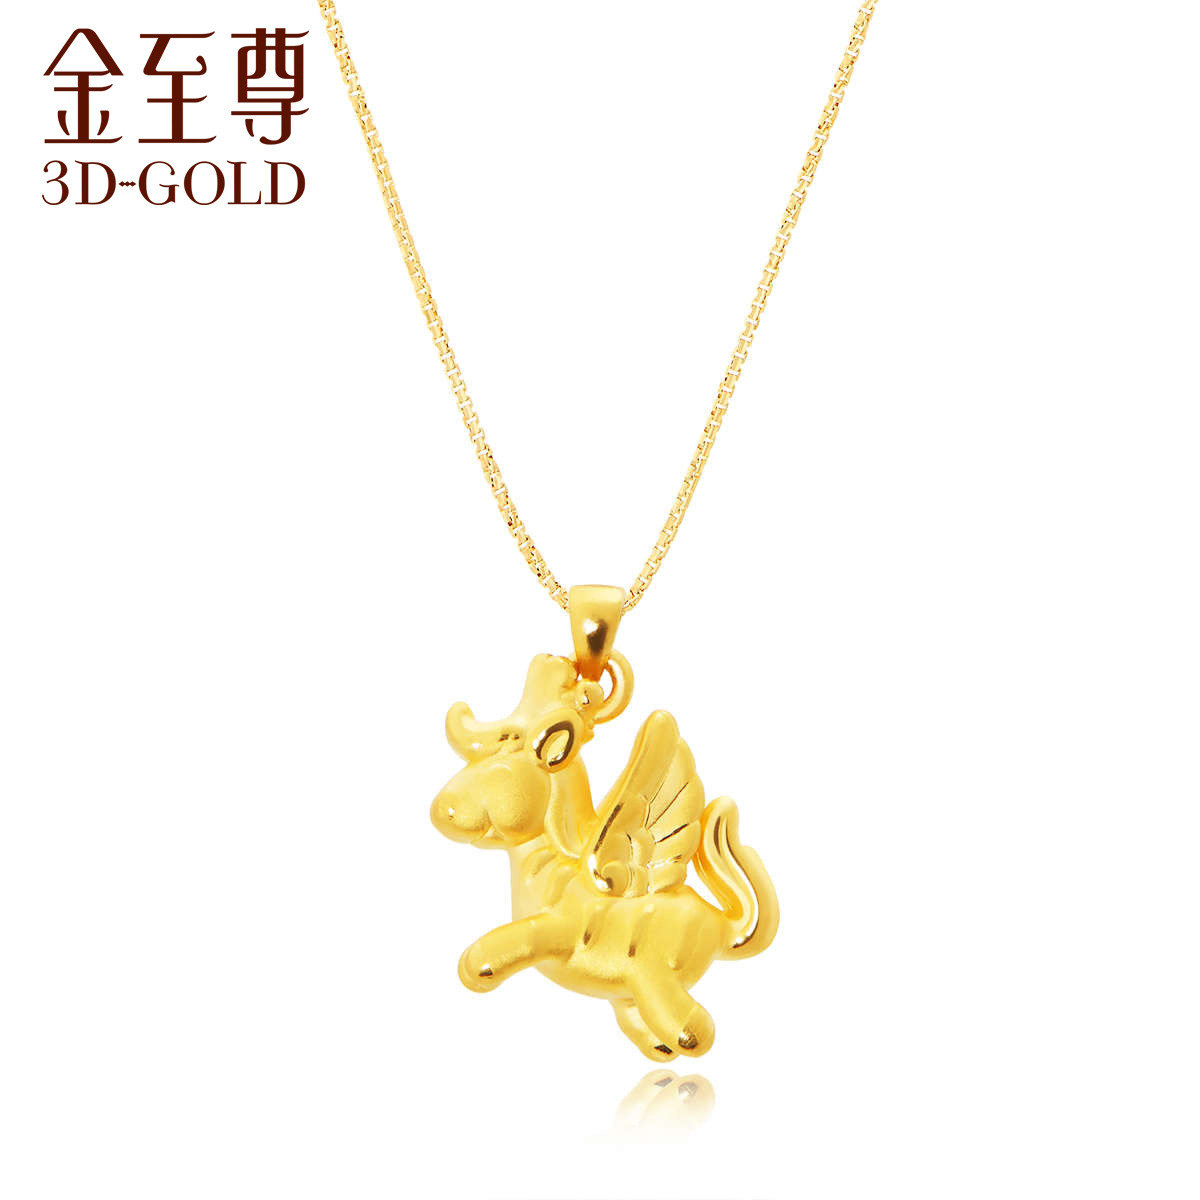 3D-GOLD Jewellery | Au999 Gold electroformed Pendant Collection ...